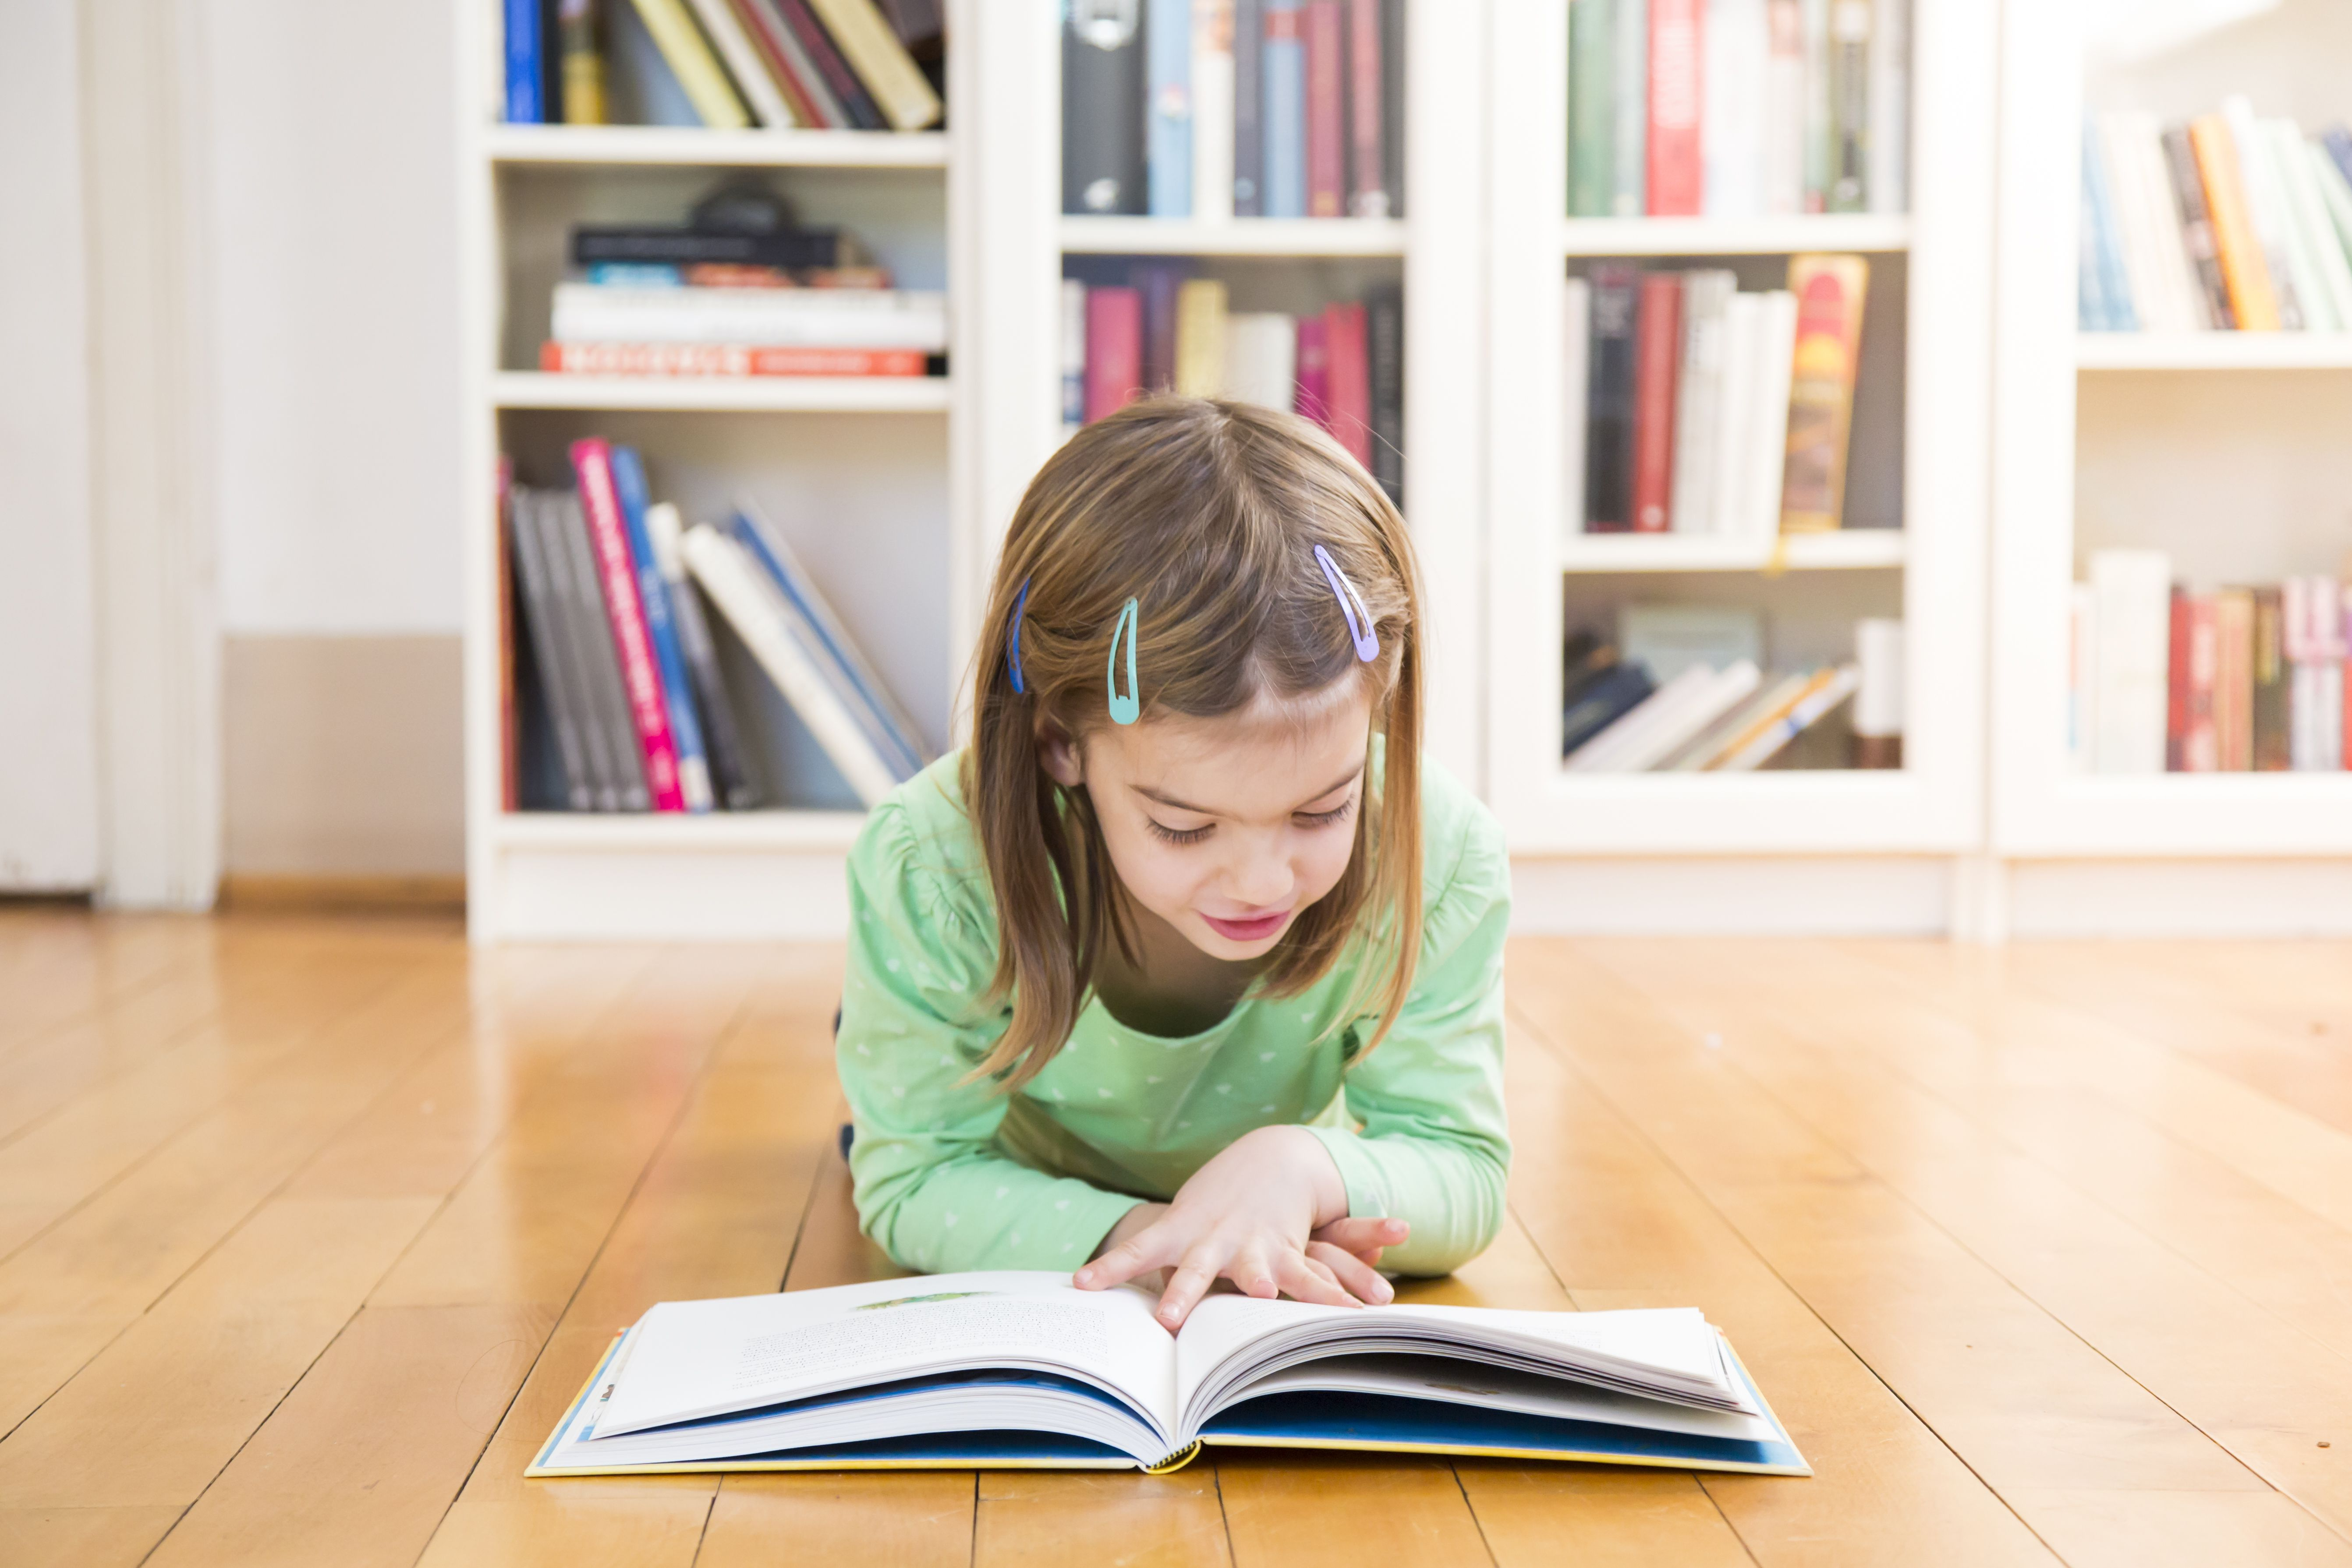 books read reading homeschooling must floor fill westend61 getty